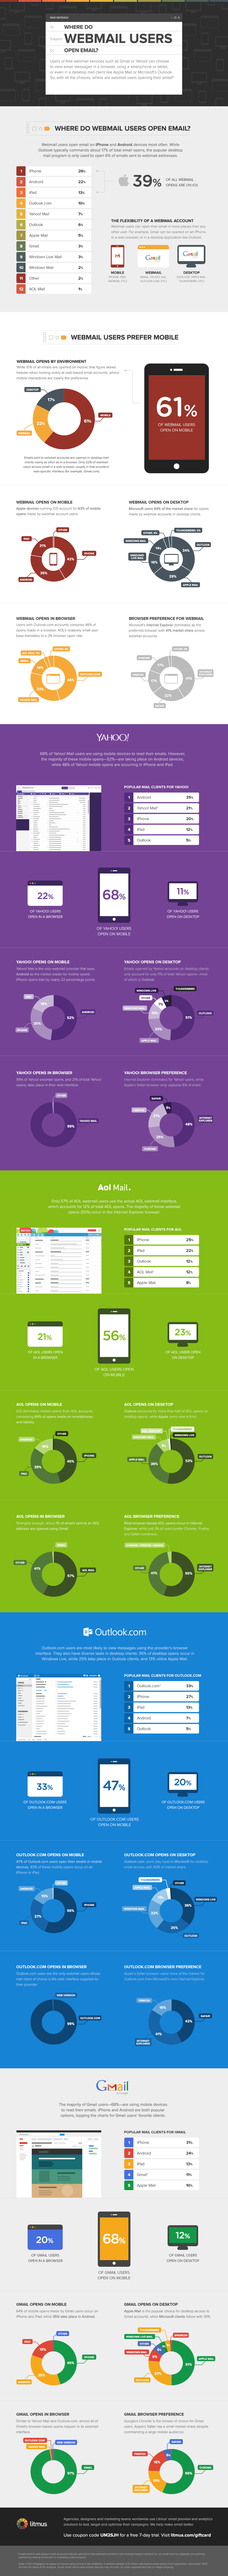 webmail-email-market-share-infographic